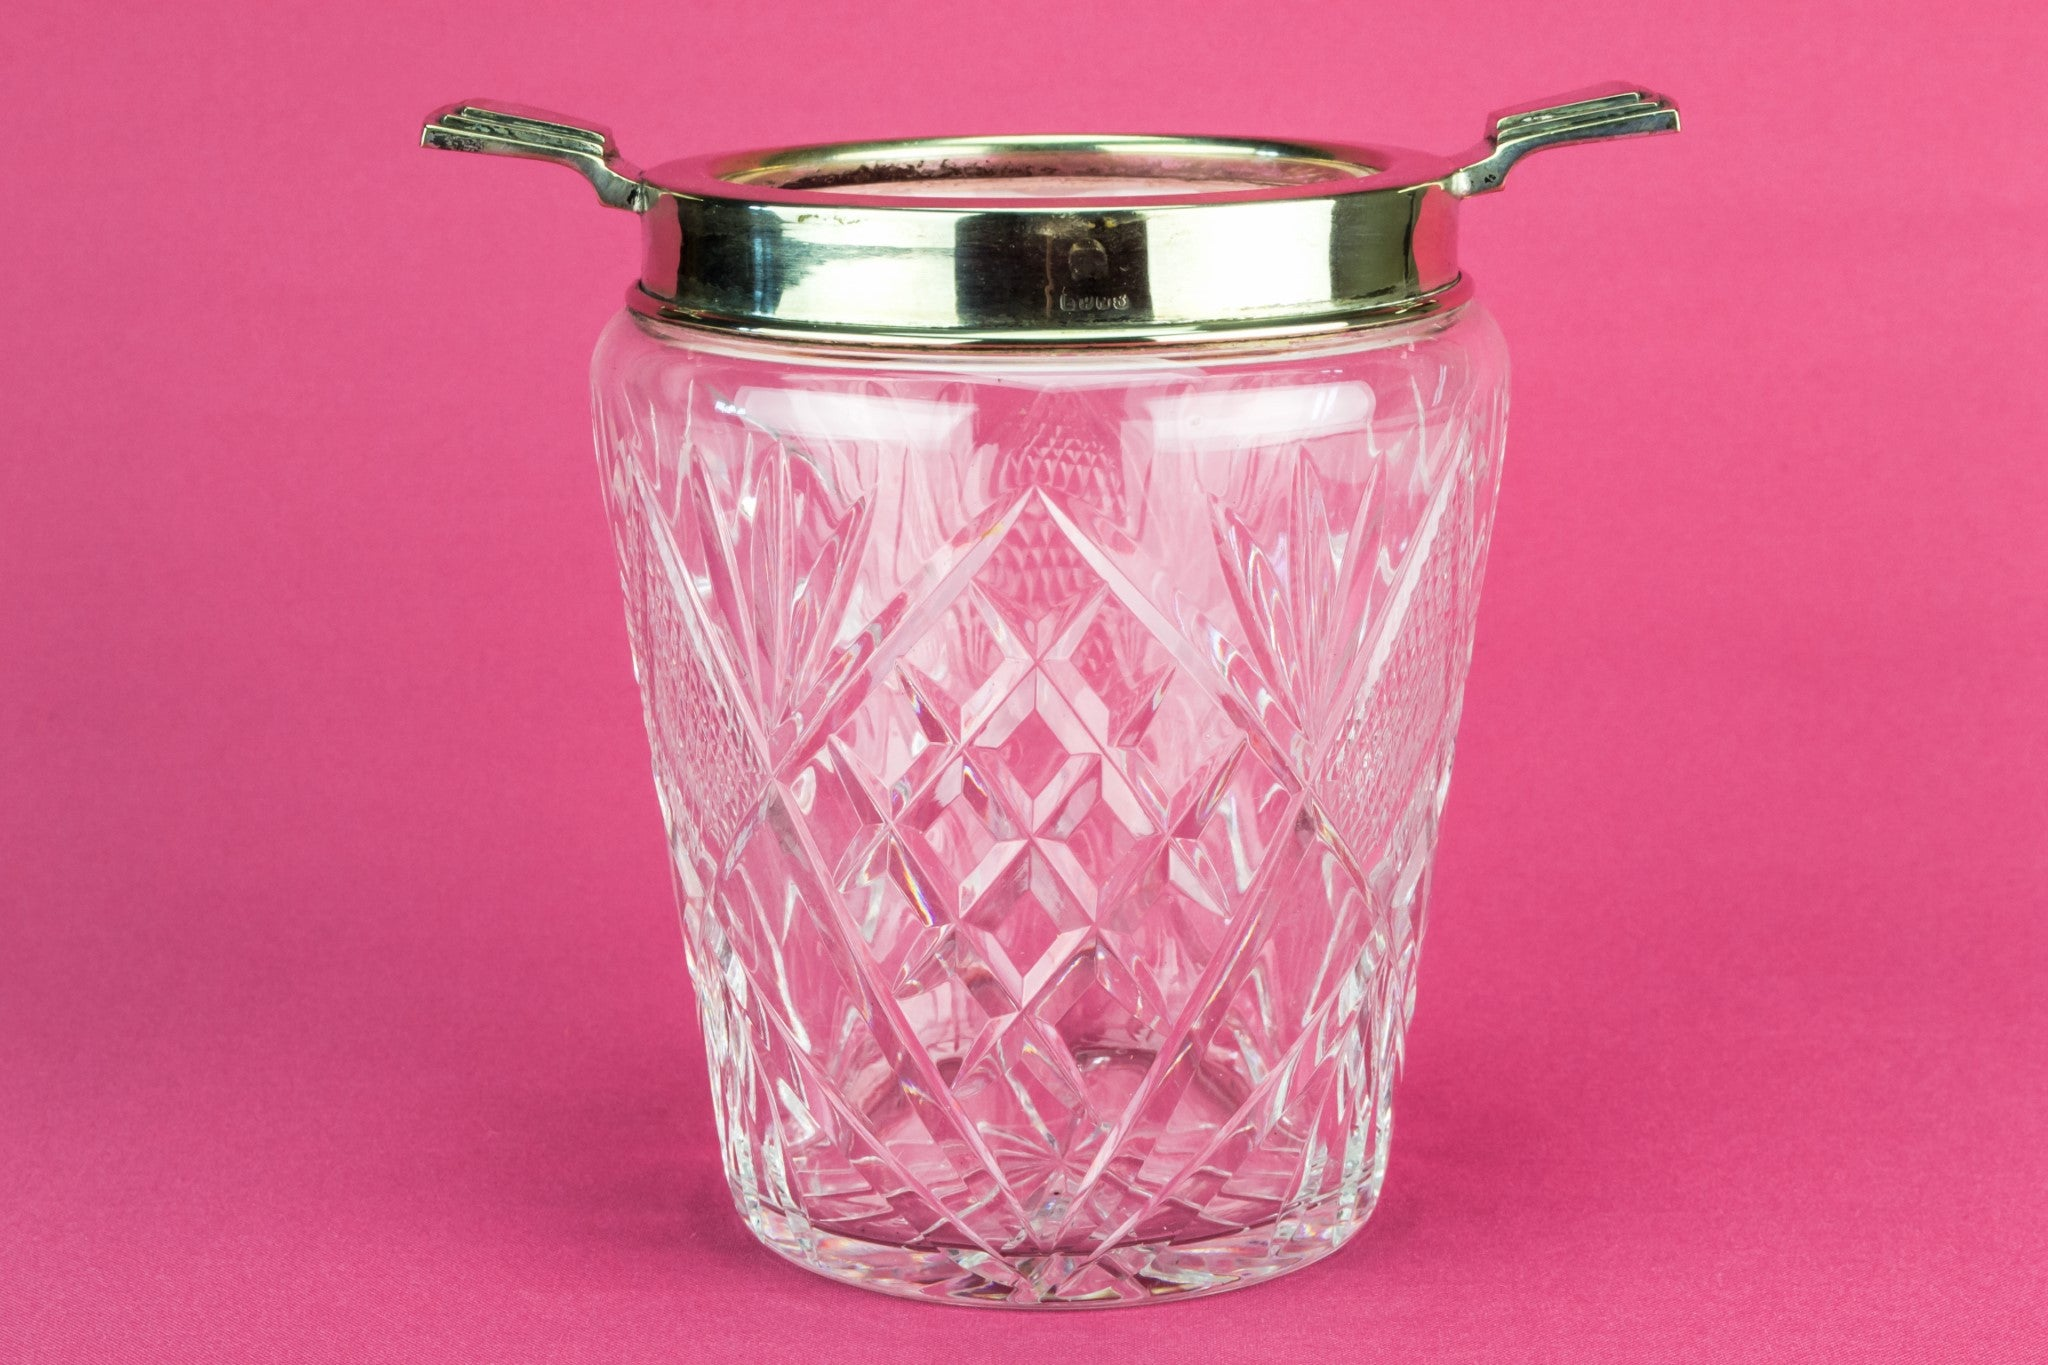 Slick Art Deco ice bucket